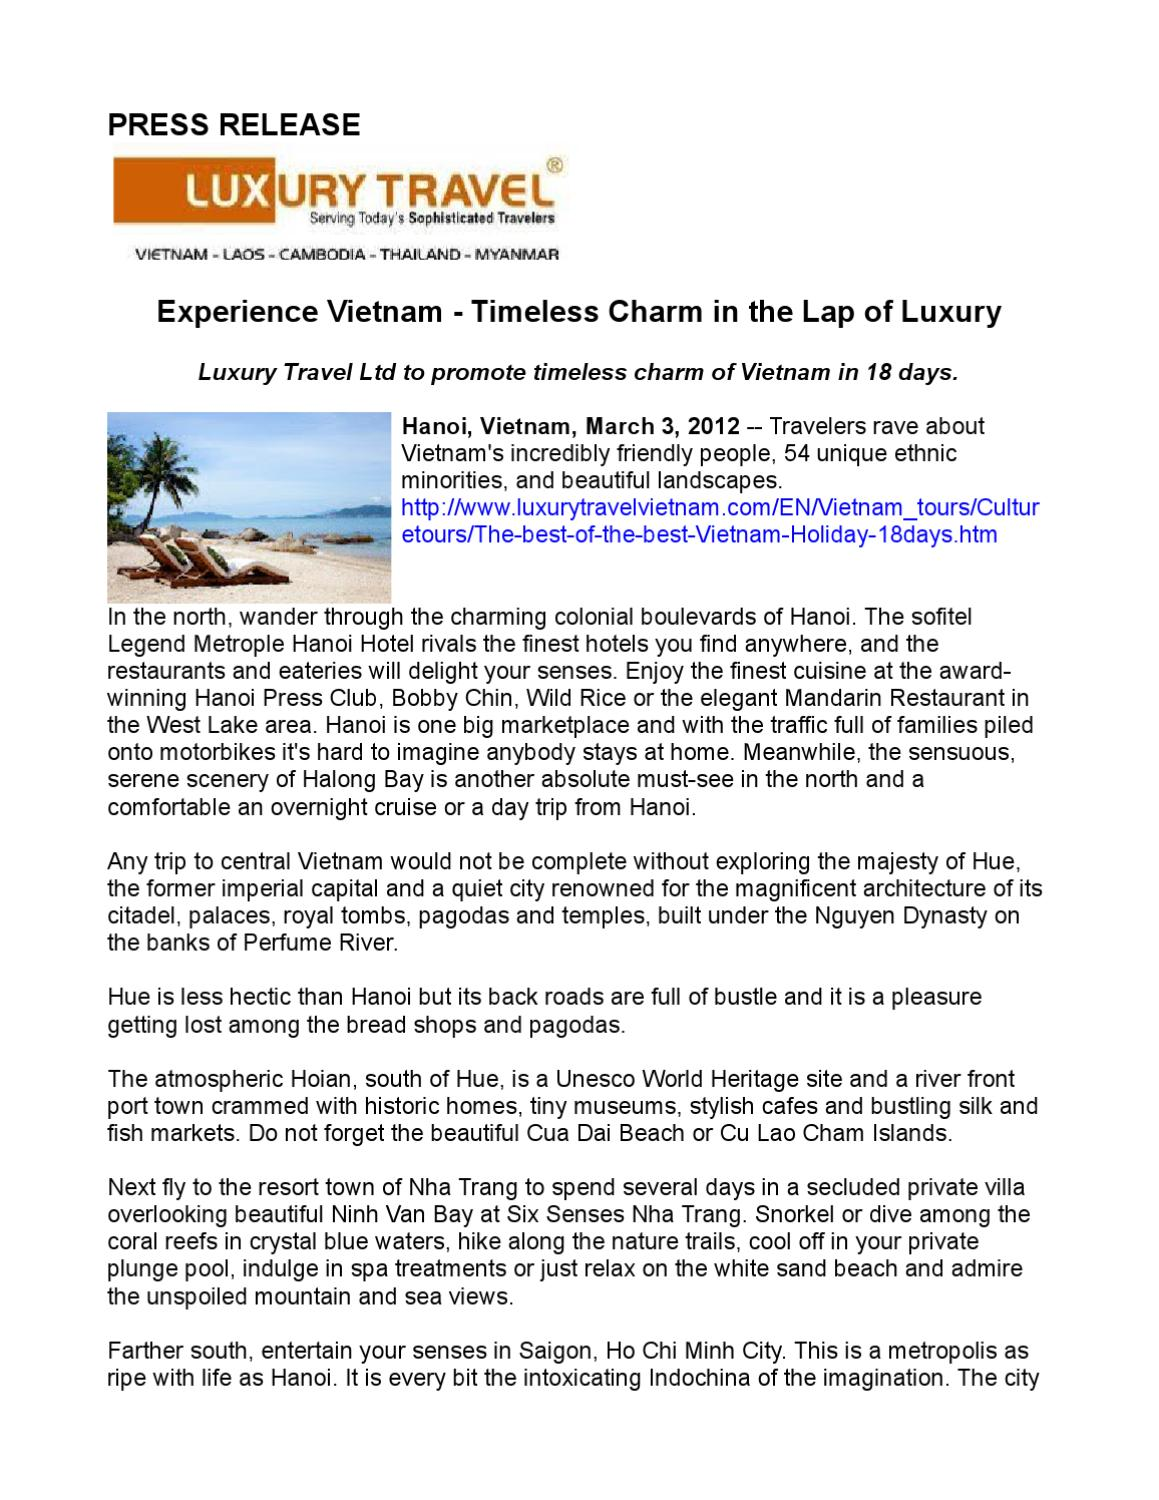 Experience Vietnam Timeless Charm In The Lap Of Luxury By Star One Public Relations Issuu